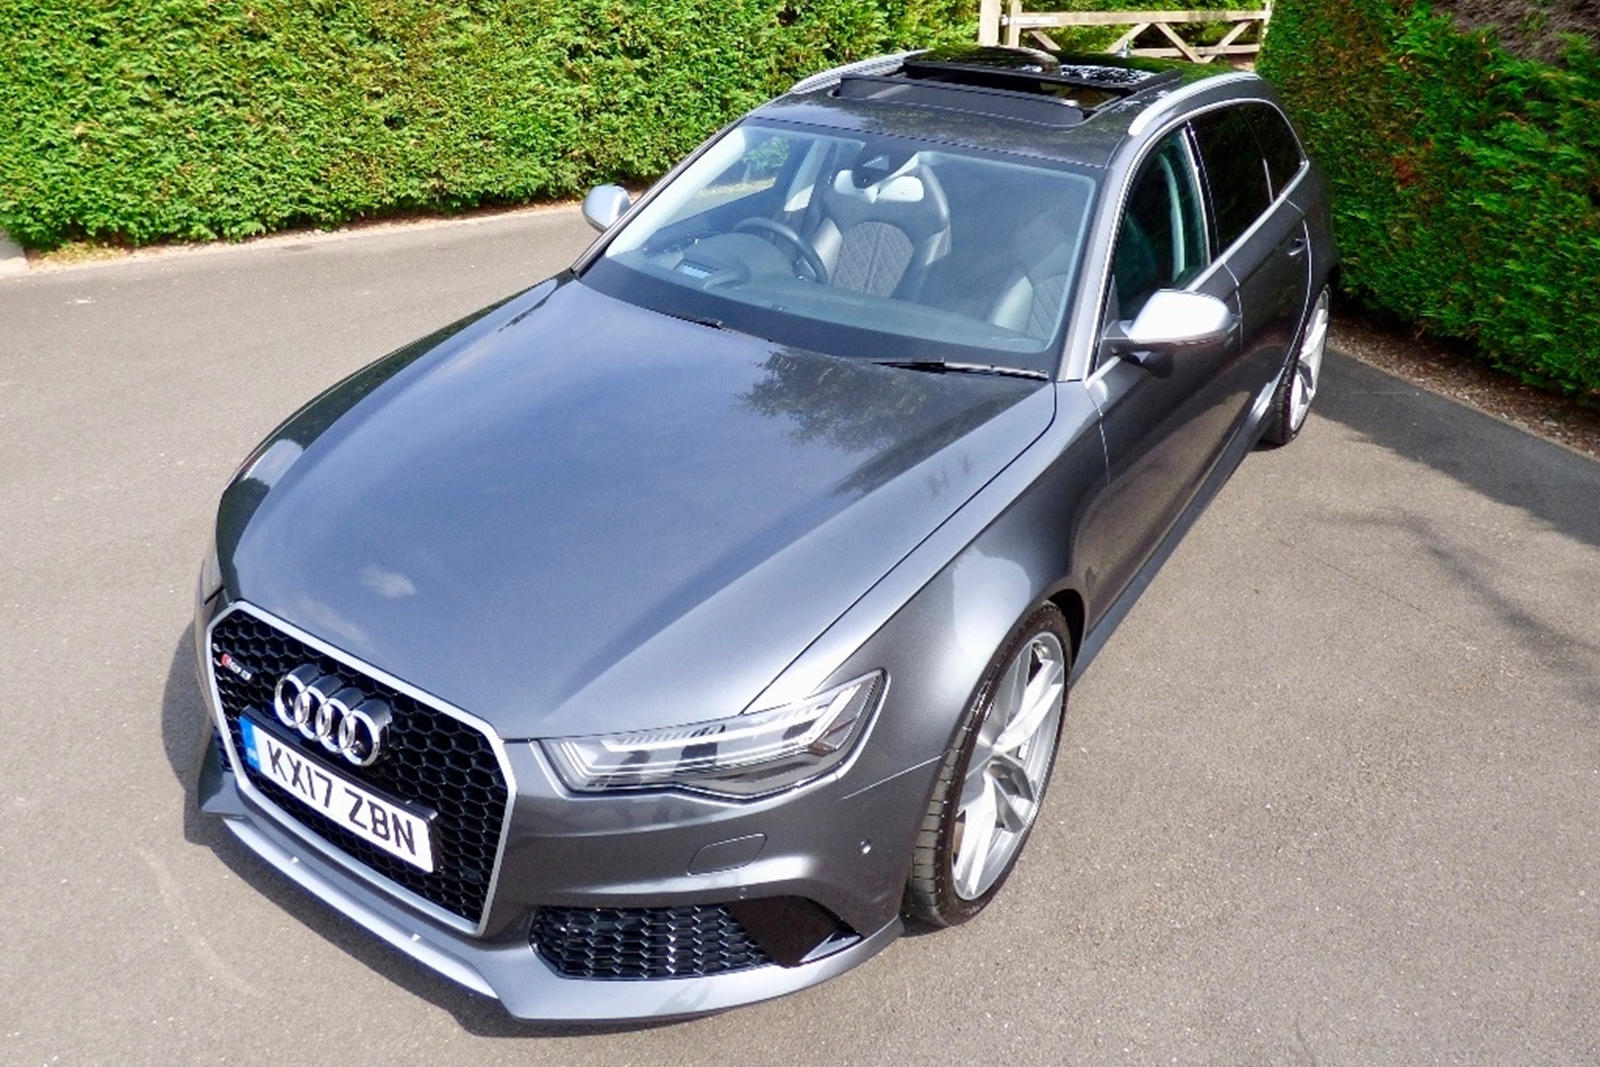 Audi RS6 Prince harry